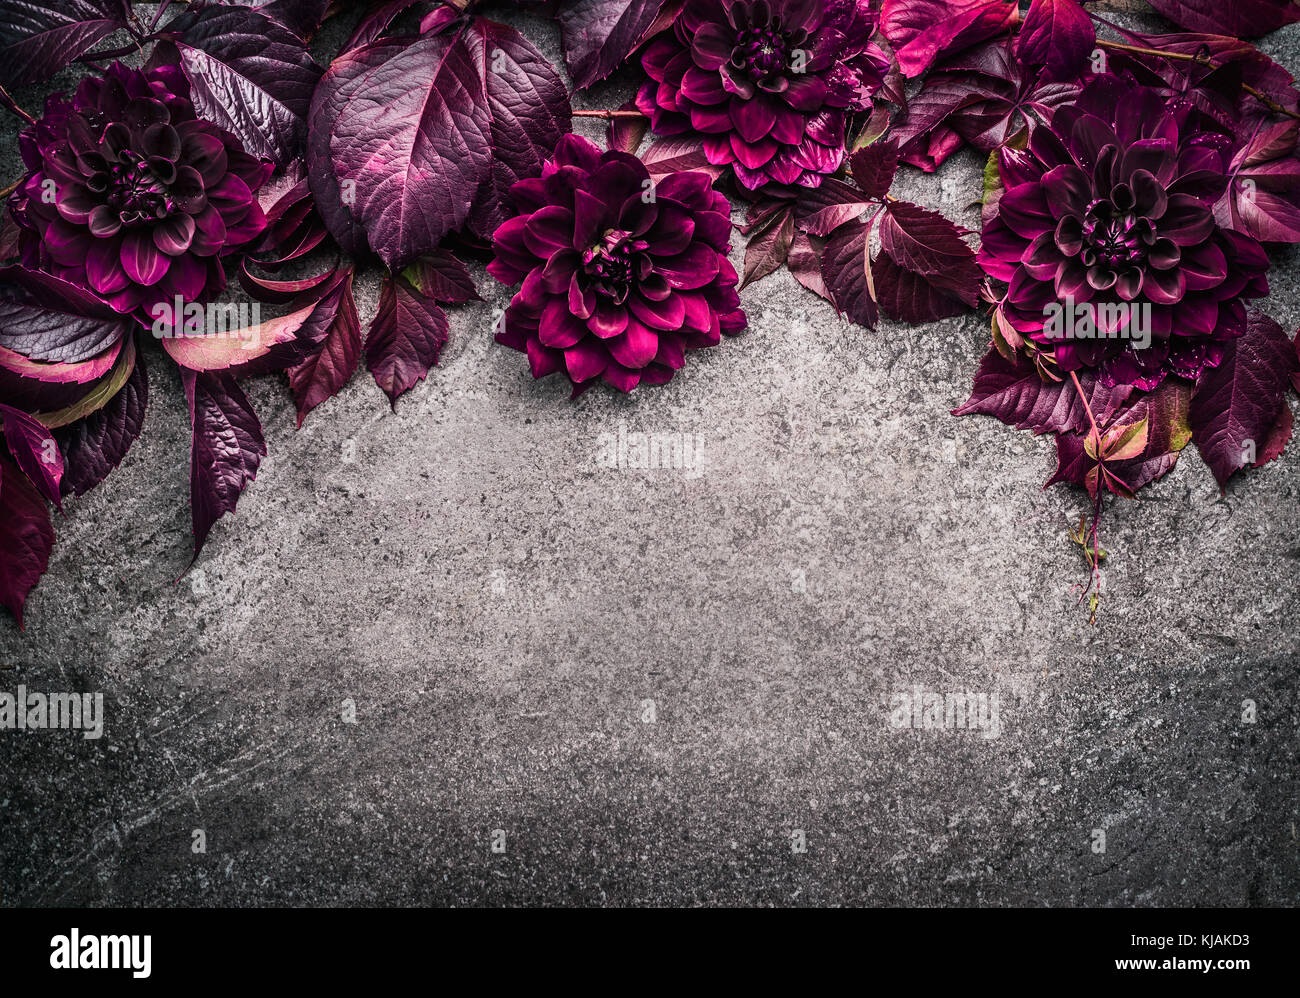 dark purple floral border with flowers petal and leaves on gray